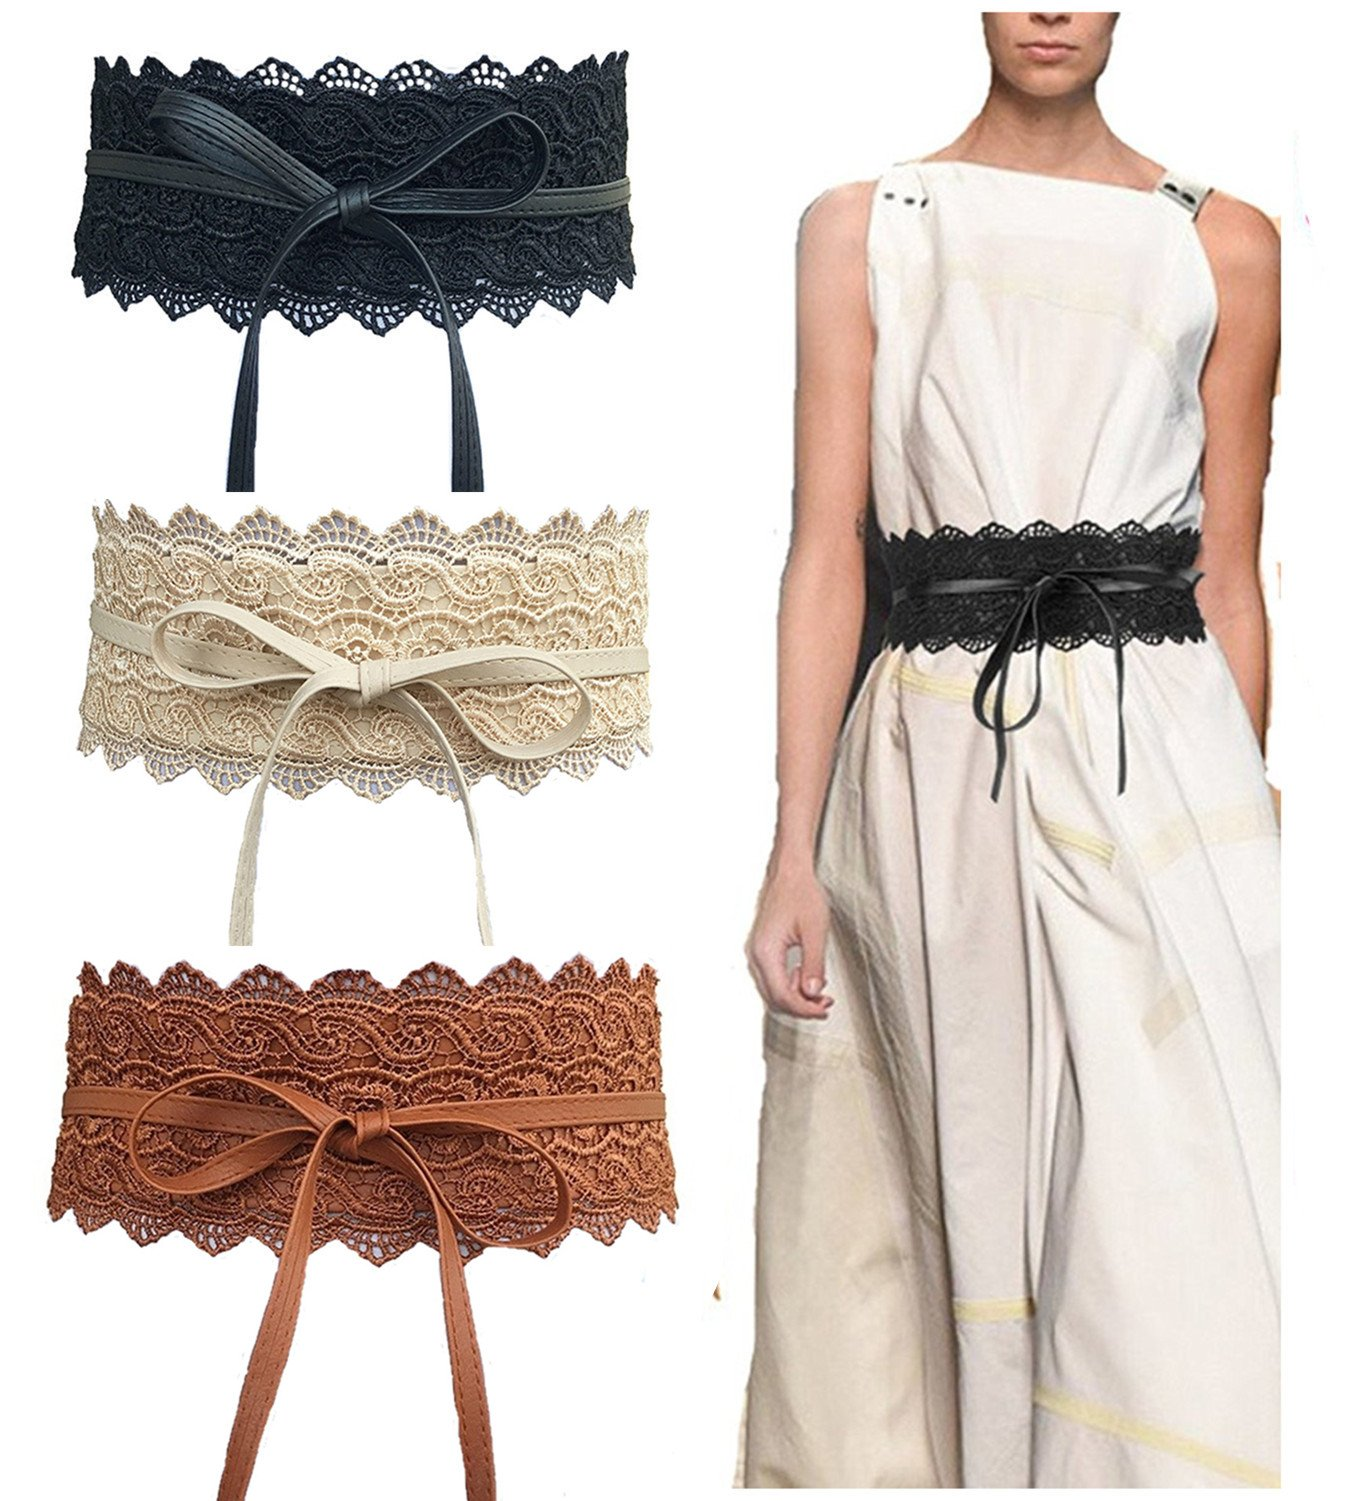 Toptim Women's Lace Belt Bow Tie Wrap Faux Leather Boho Band Corset 3-Pack (Black-Coffee-Beige)